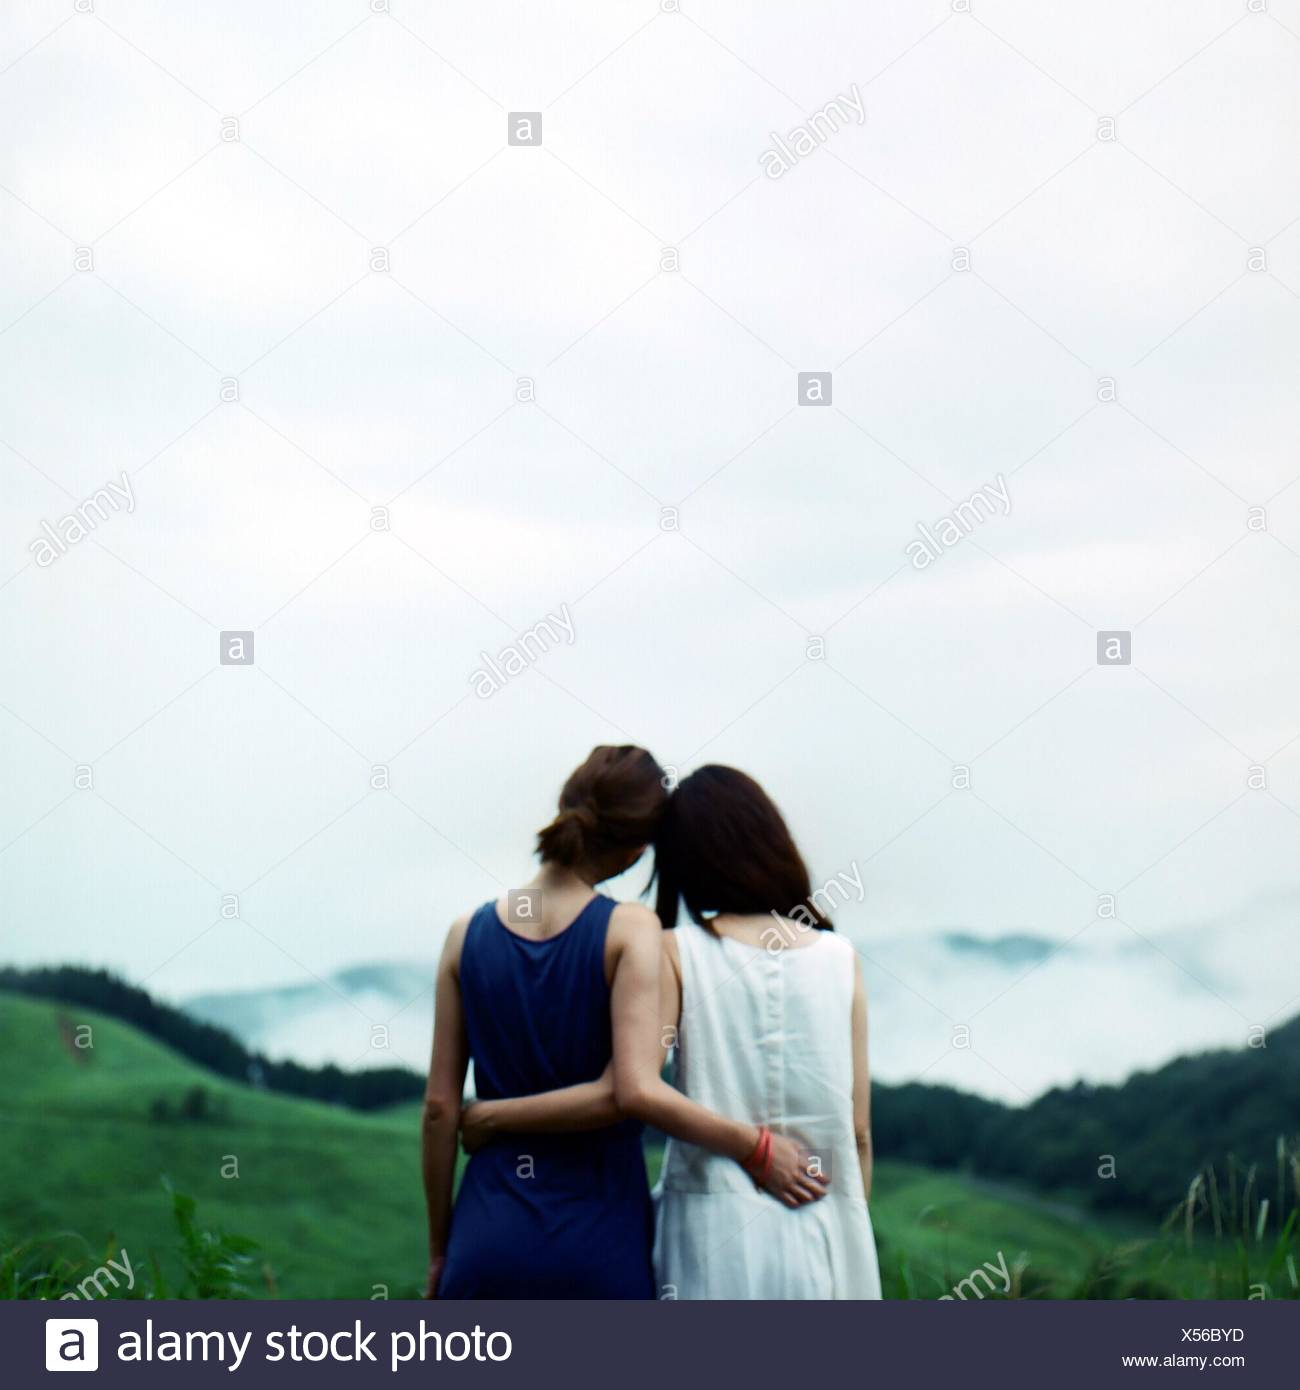 Rear View Of Female Friends Standing On Field Against Sky - Stock Image